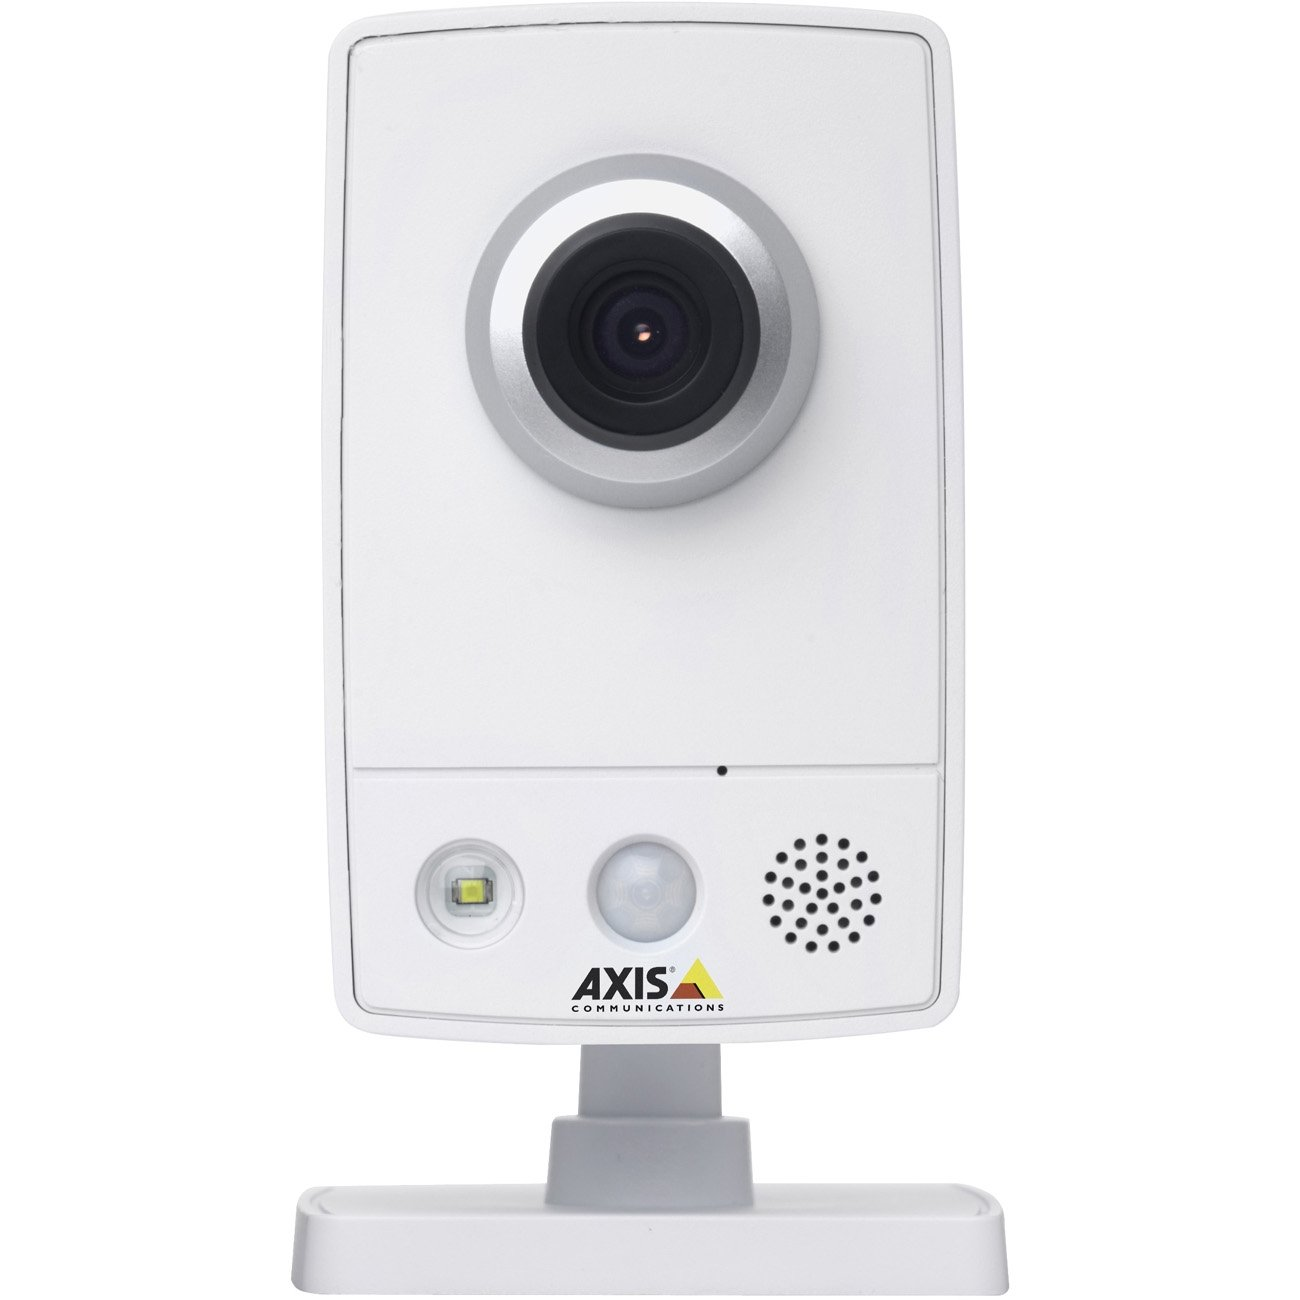 AXIS M1054 NETWORK CAMERA DRIVERS FOR PC